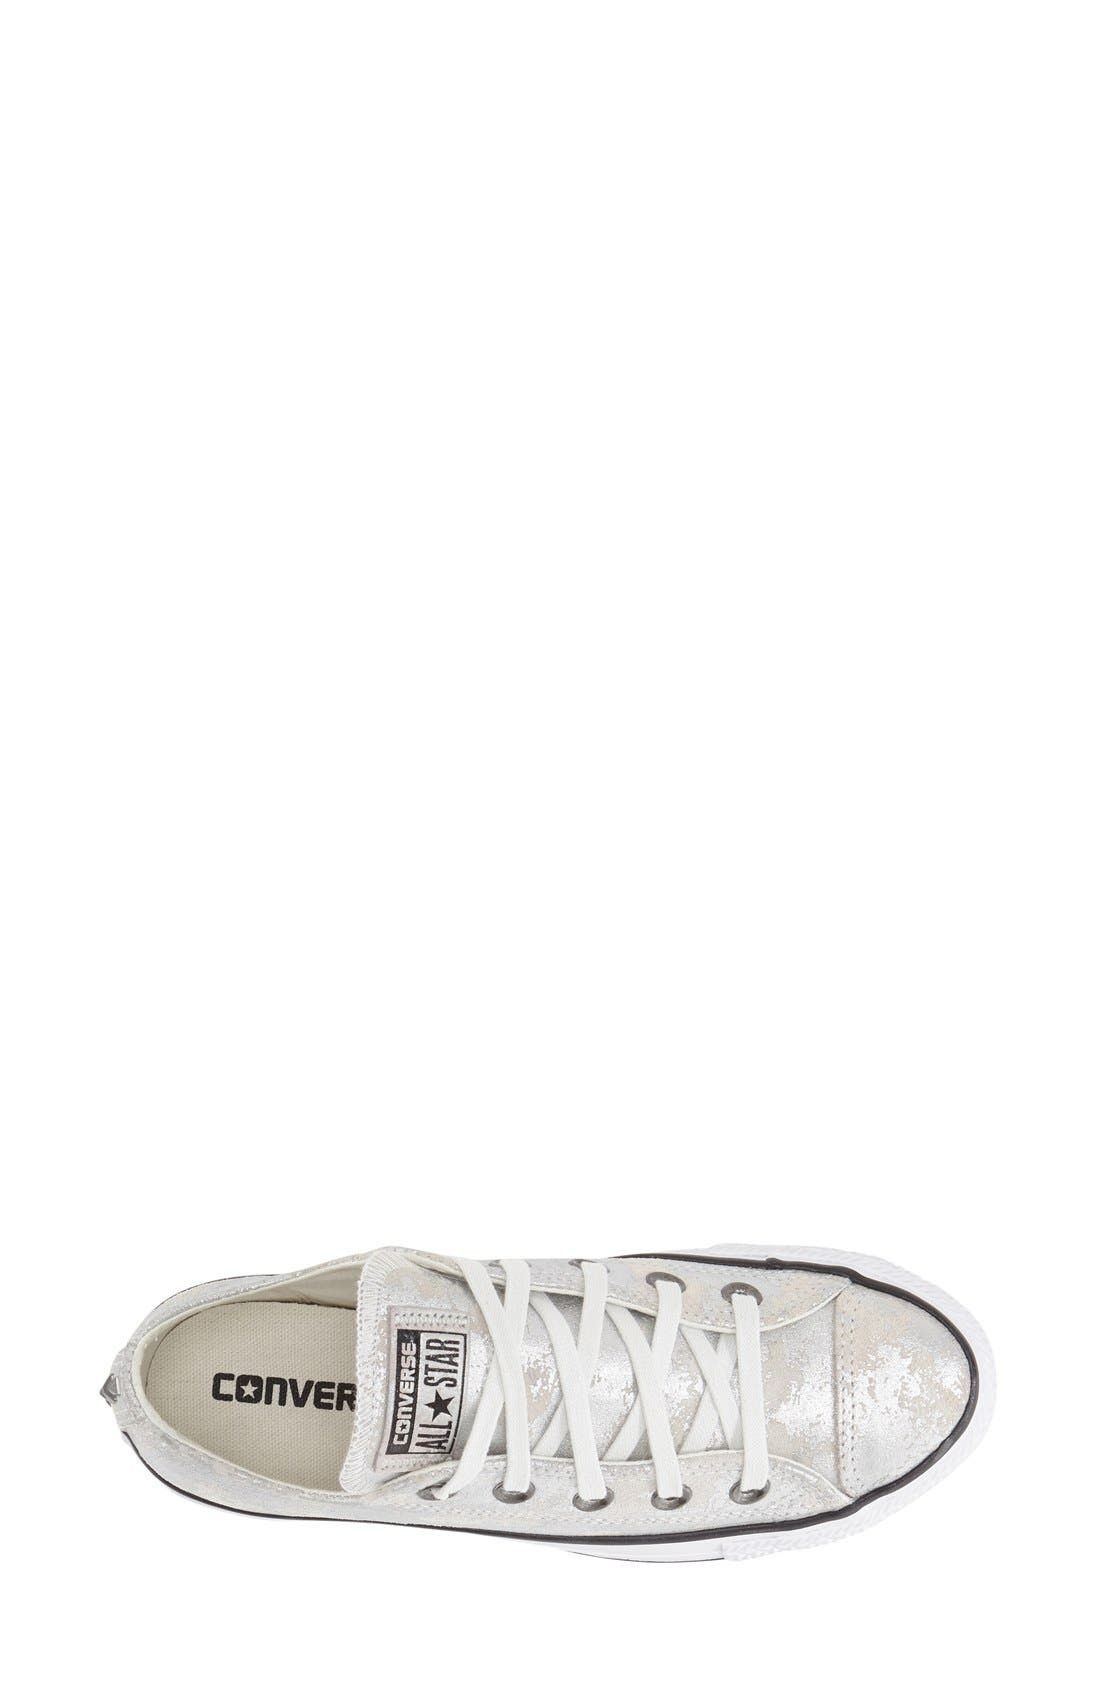 Alternate Image 3  - Converse Chuck Taylor® All Star® 'Pyramid' Leather Sneaker (Women)